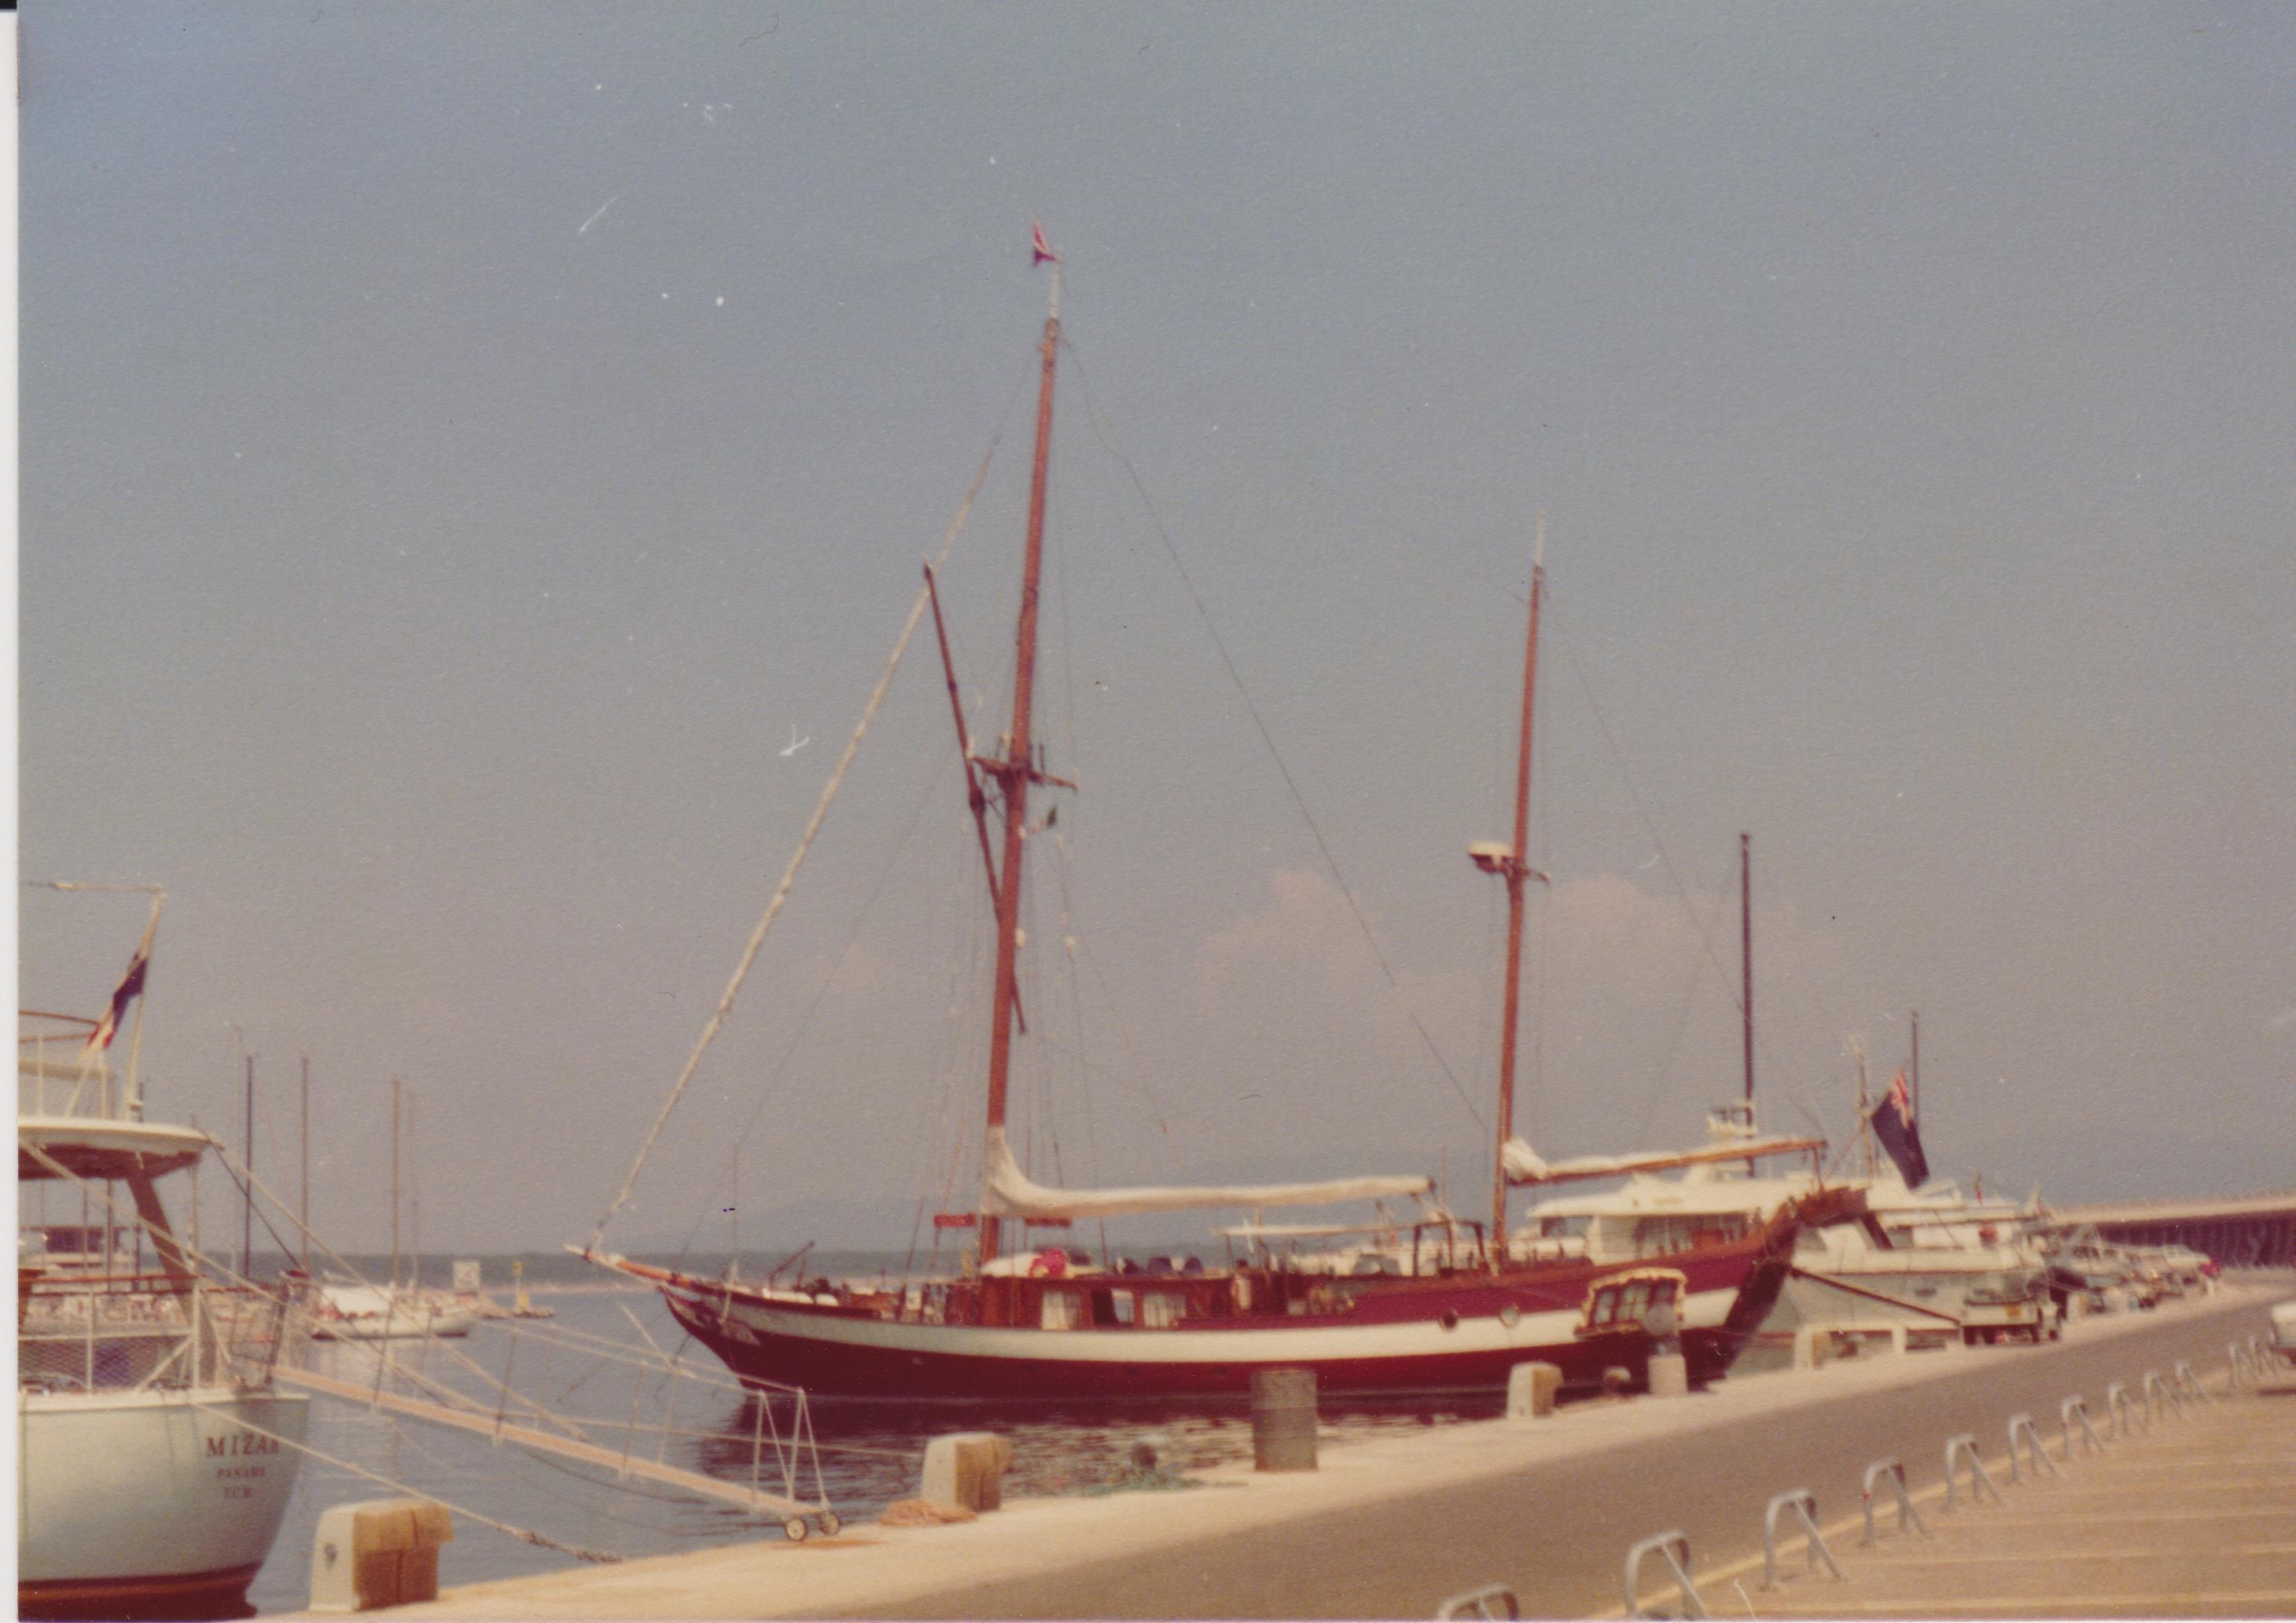 Classic ship in marina